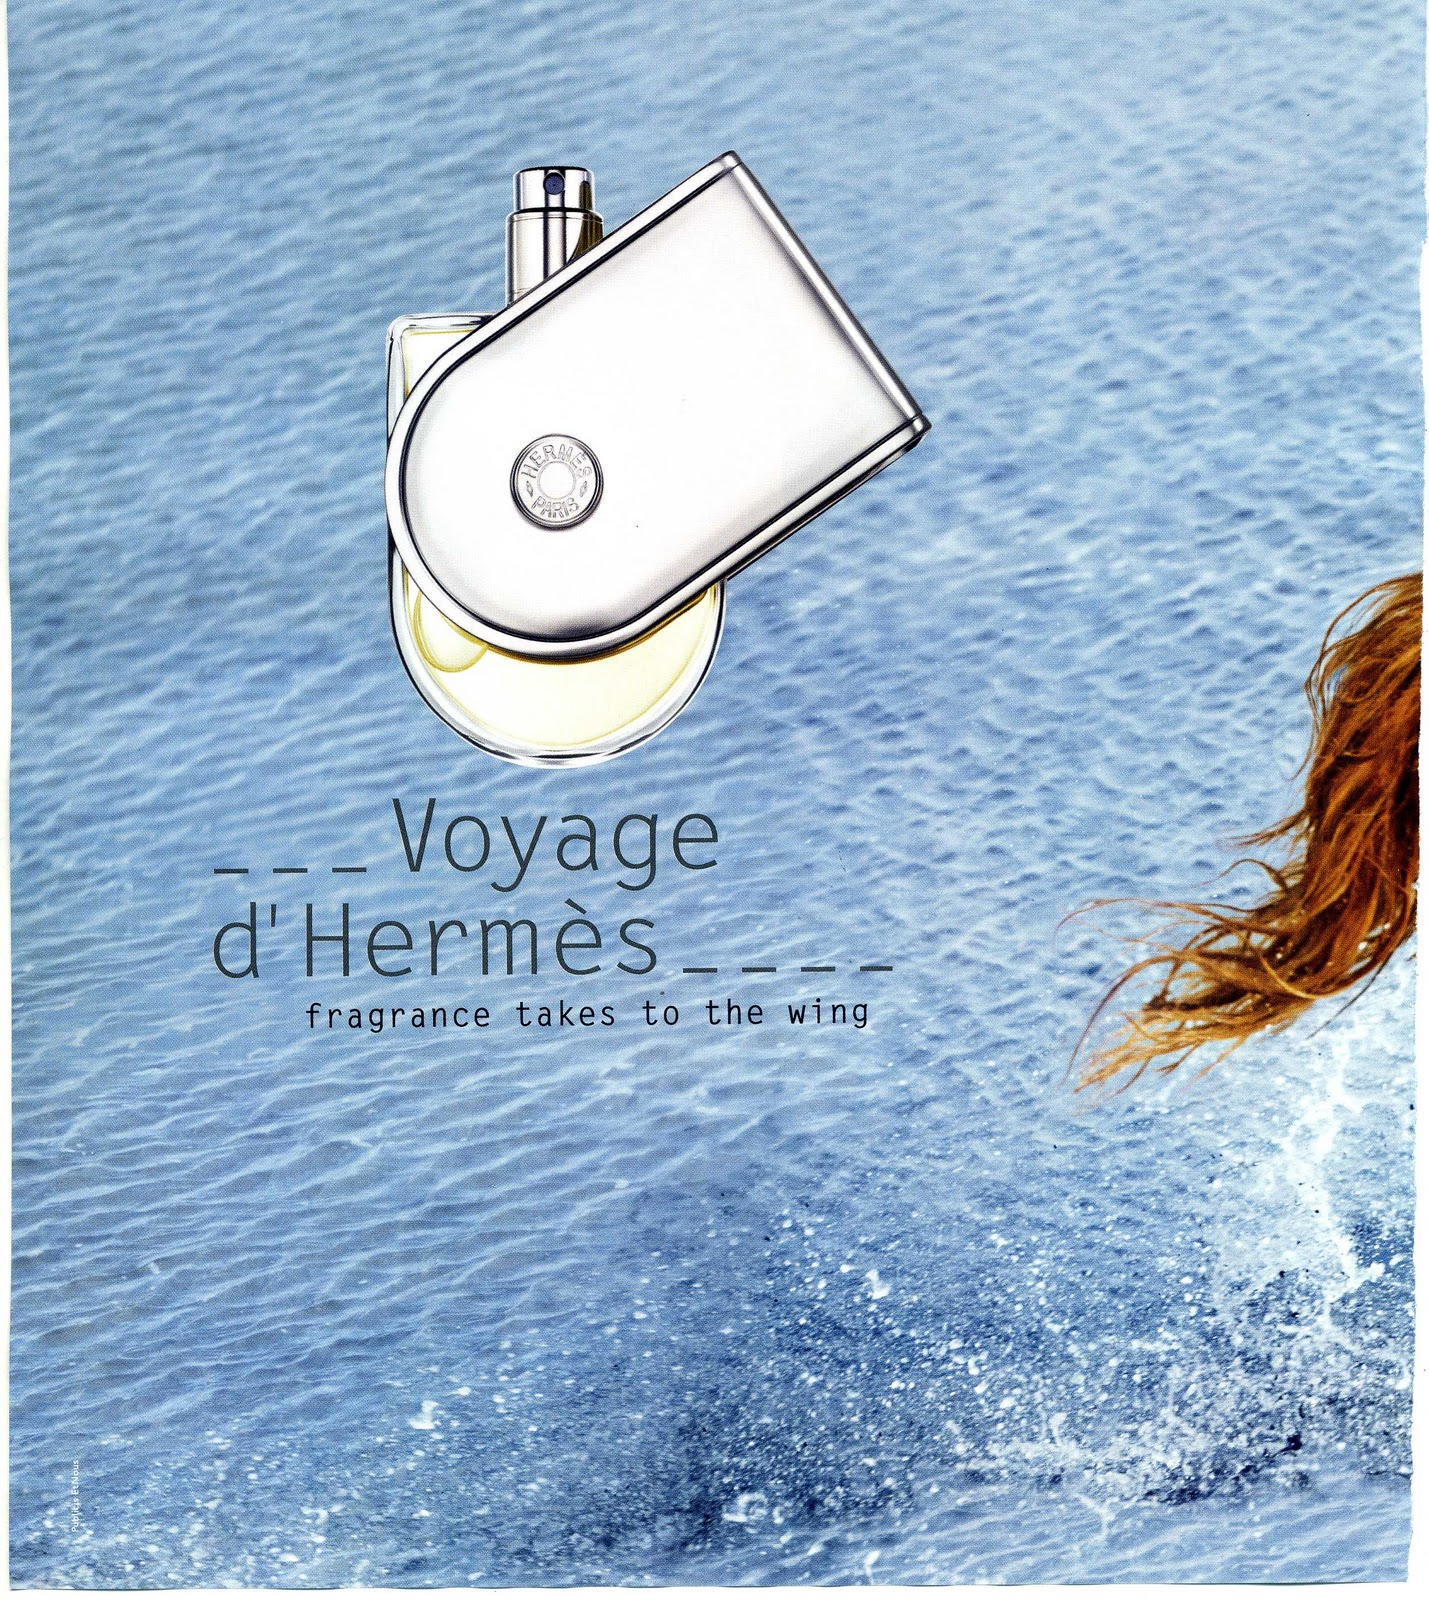 Beauty Style Blog By Laura Valuta Christmas Gift Ideas Hermes Voyage Unisex Perfume That Makes Me Crazy In A Very Positive Way